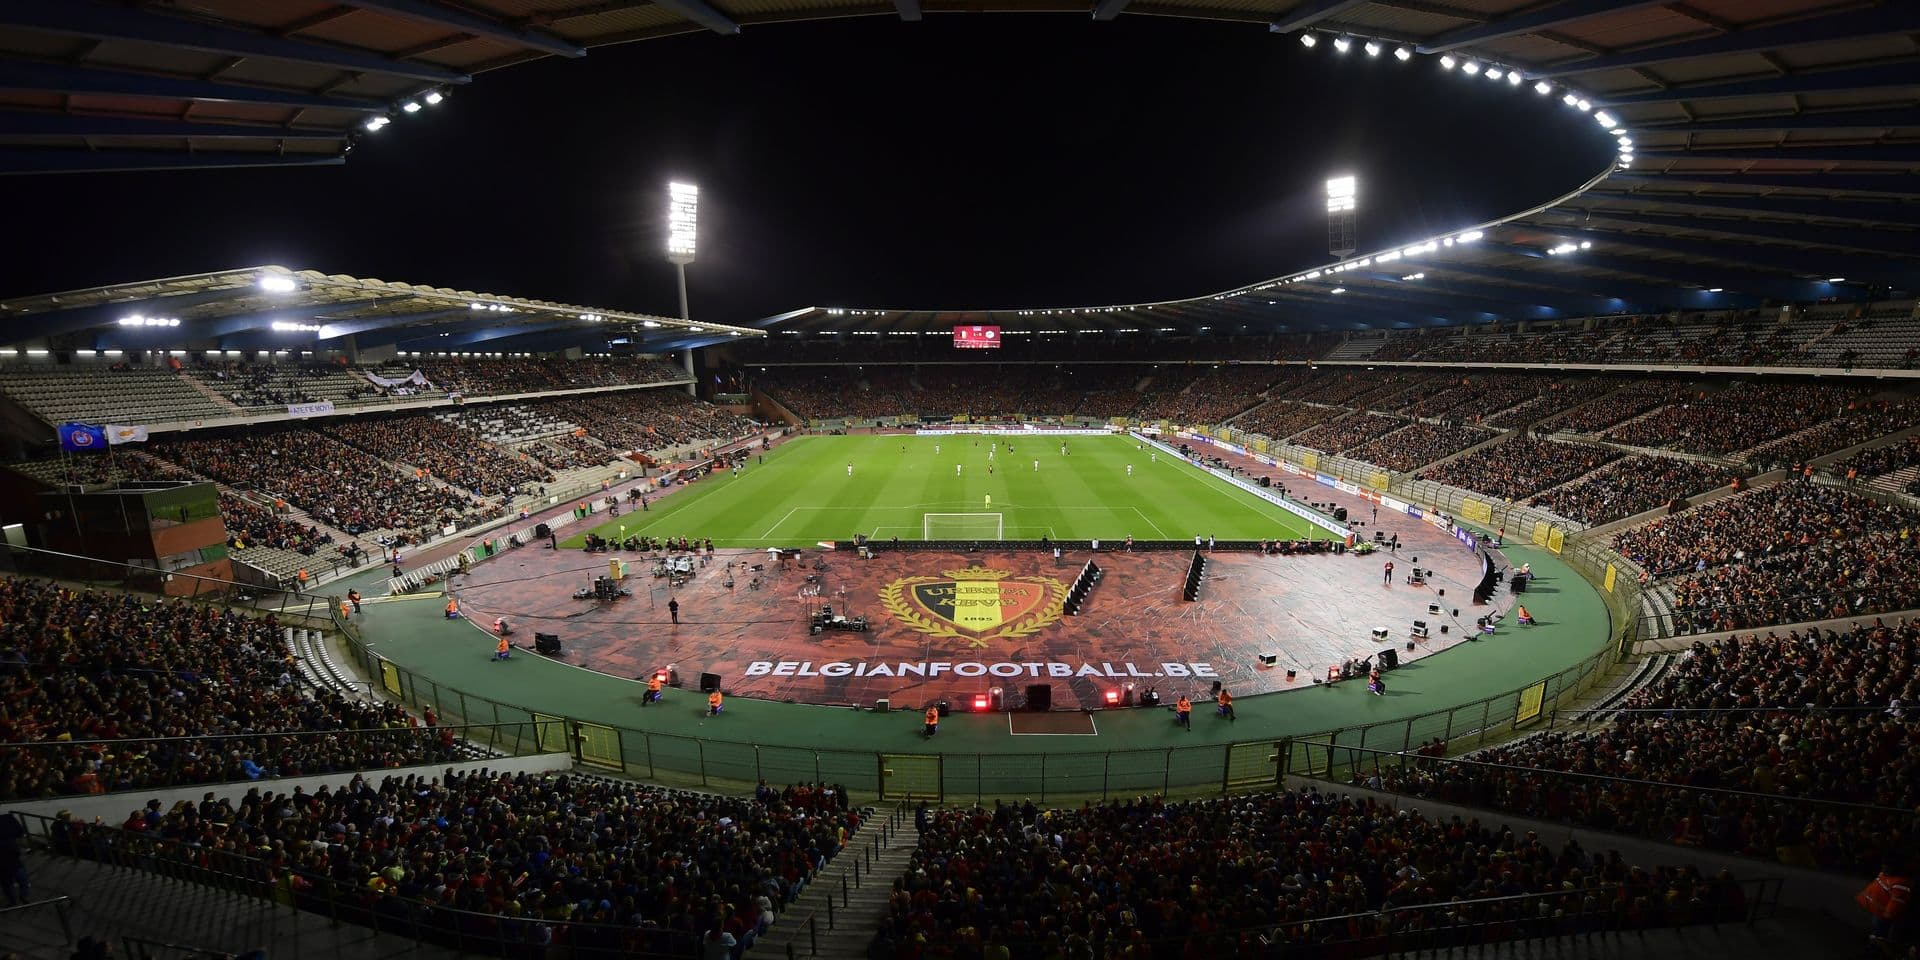 BRUSSELS, BELGIUM - OCTOBER 10 : General stadium view during the World Cup Qualifier Group H match between Belgium and Cyprus at the King Baudouin Stadium on October 10, 2017 in Brussels, Belgium, 10/10/2017 ( Photo by Nico Vereecken / Photonews